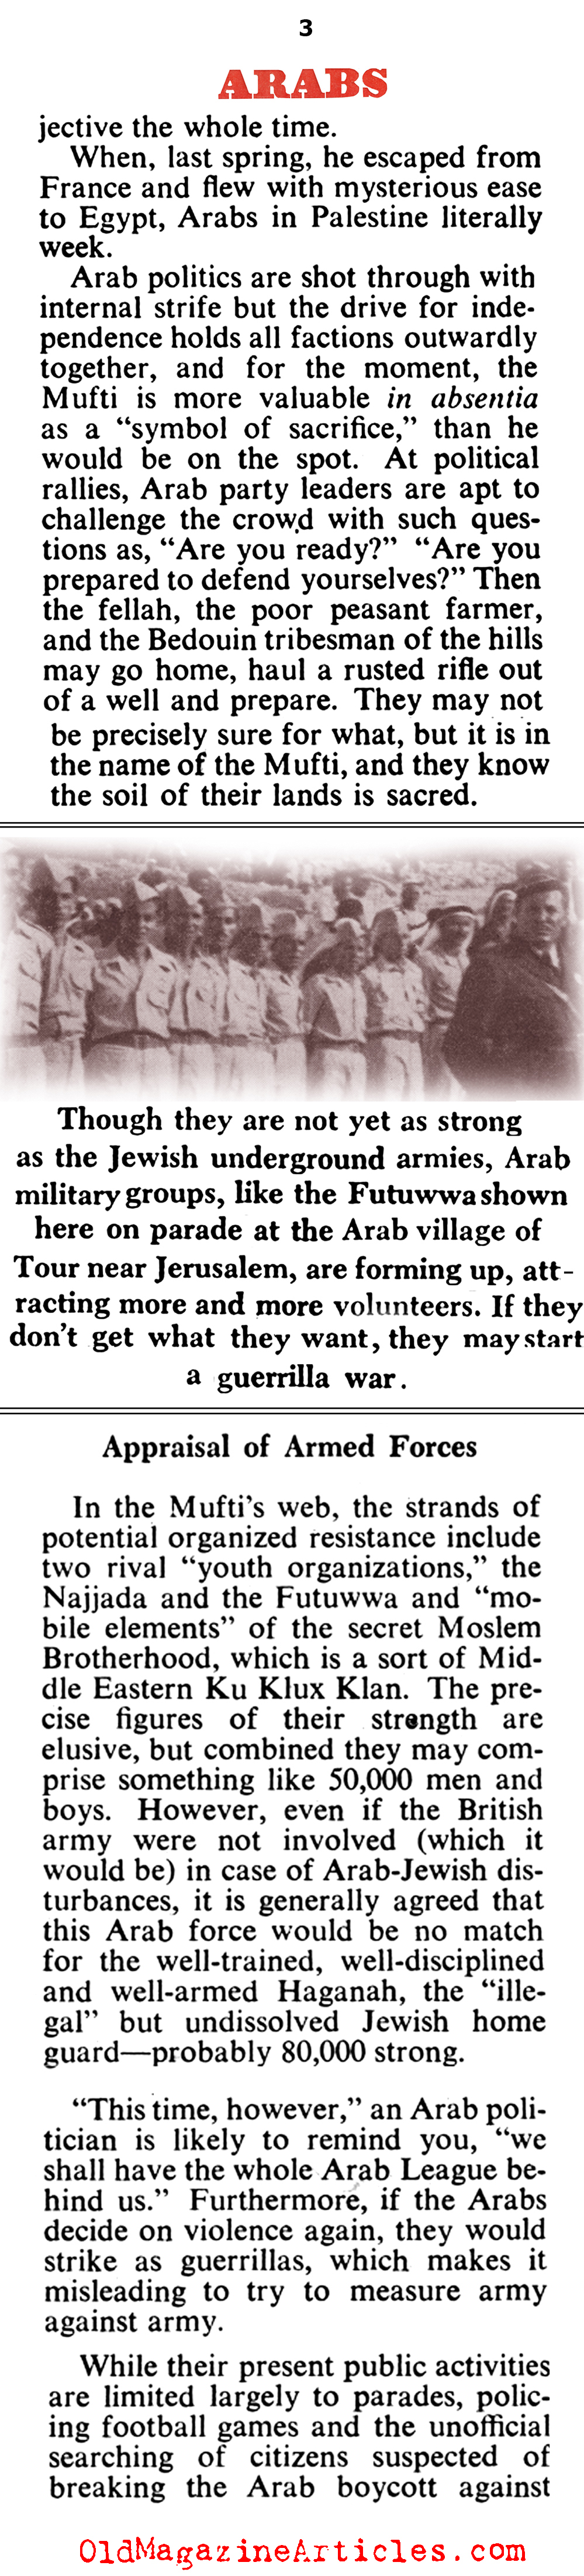 The Arabs Mobilize (Collier's Magazine, 1947)